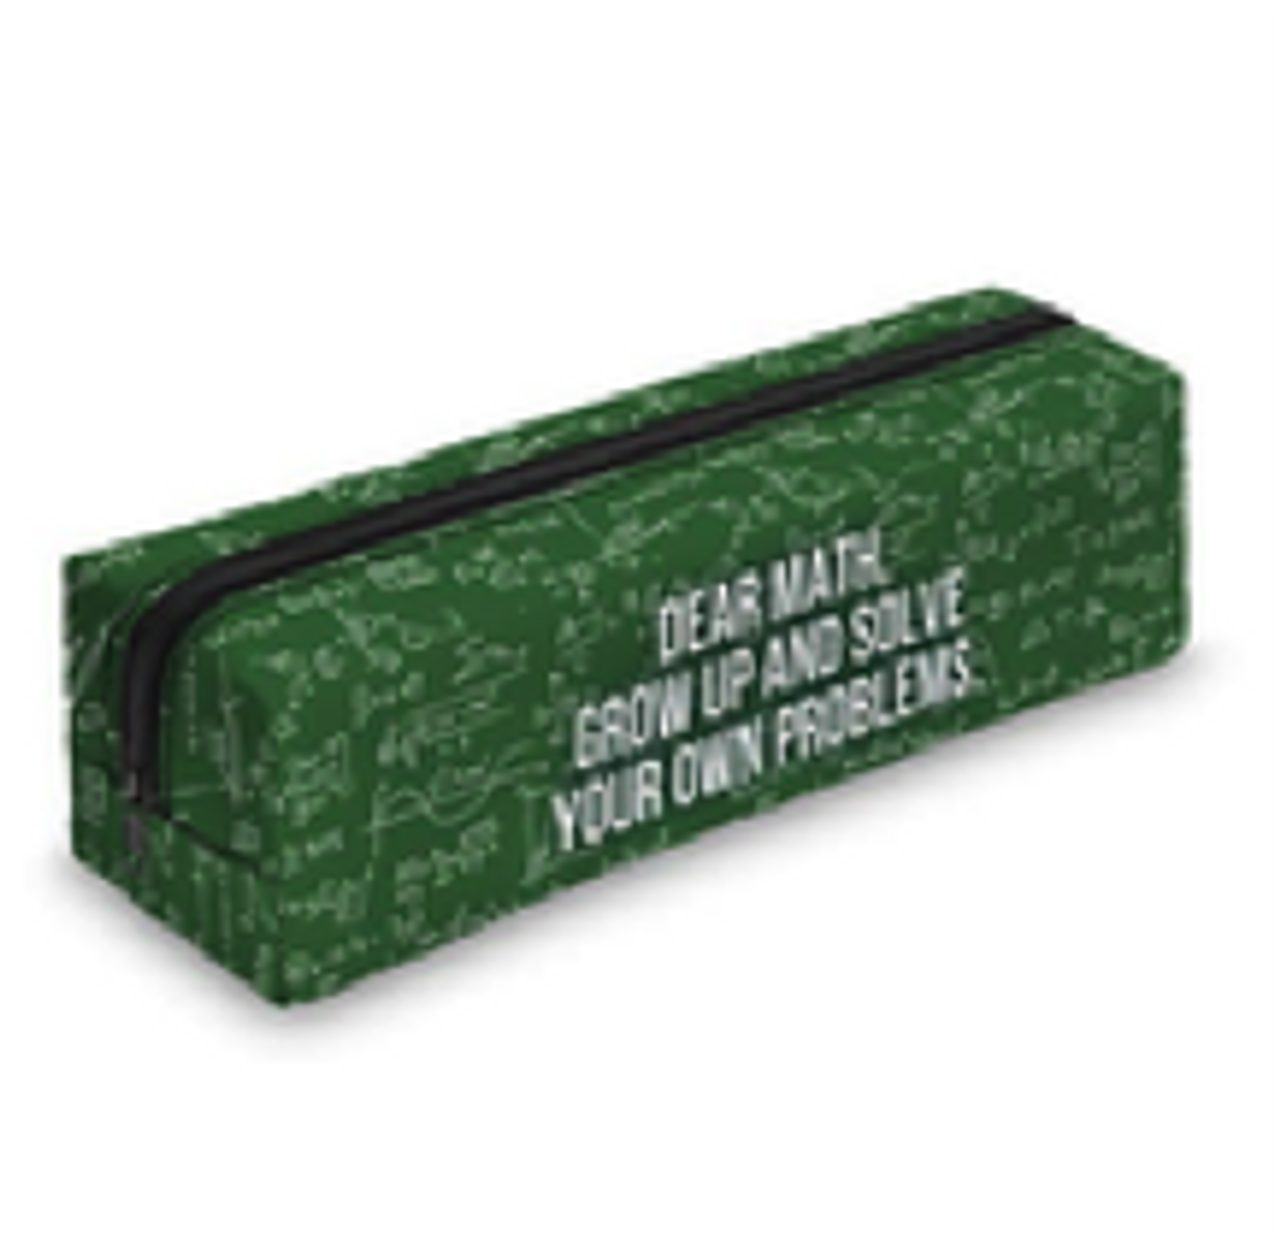 Dear Math, Grow up and Solve Your Own Problems Sassy Text Rectangular Graphic Print Cosmetics Case - 18 Styles with a green arithmetic design